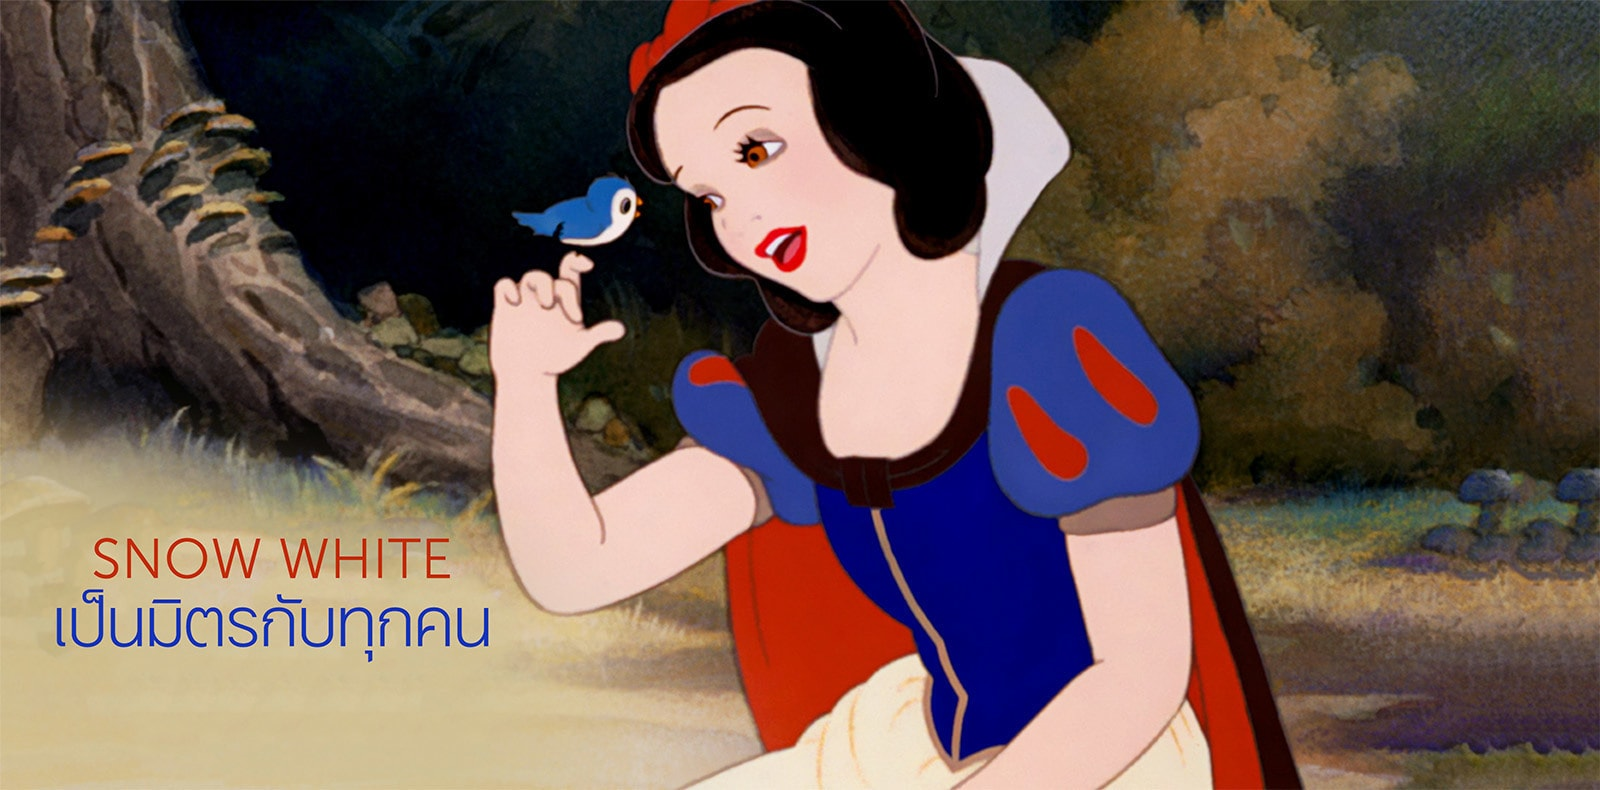 Snow White MOVIE ART 1